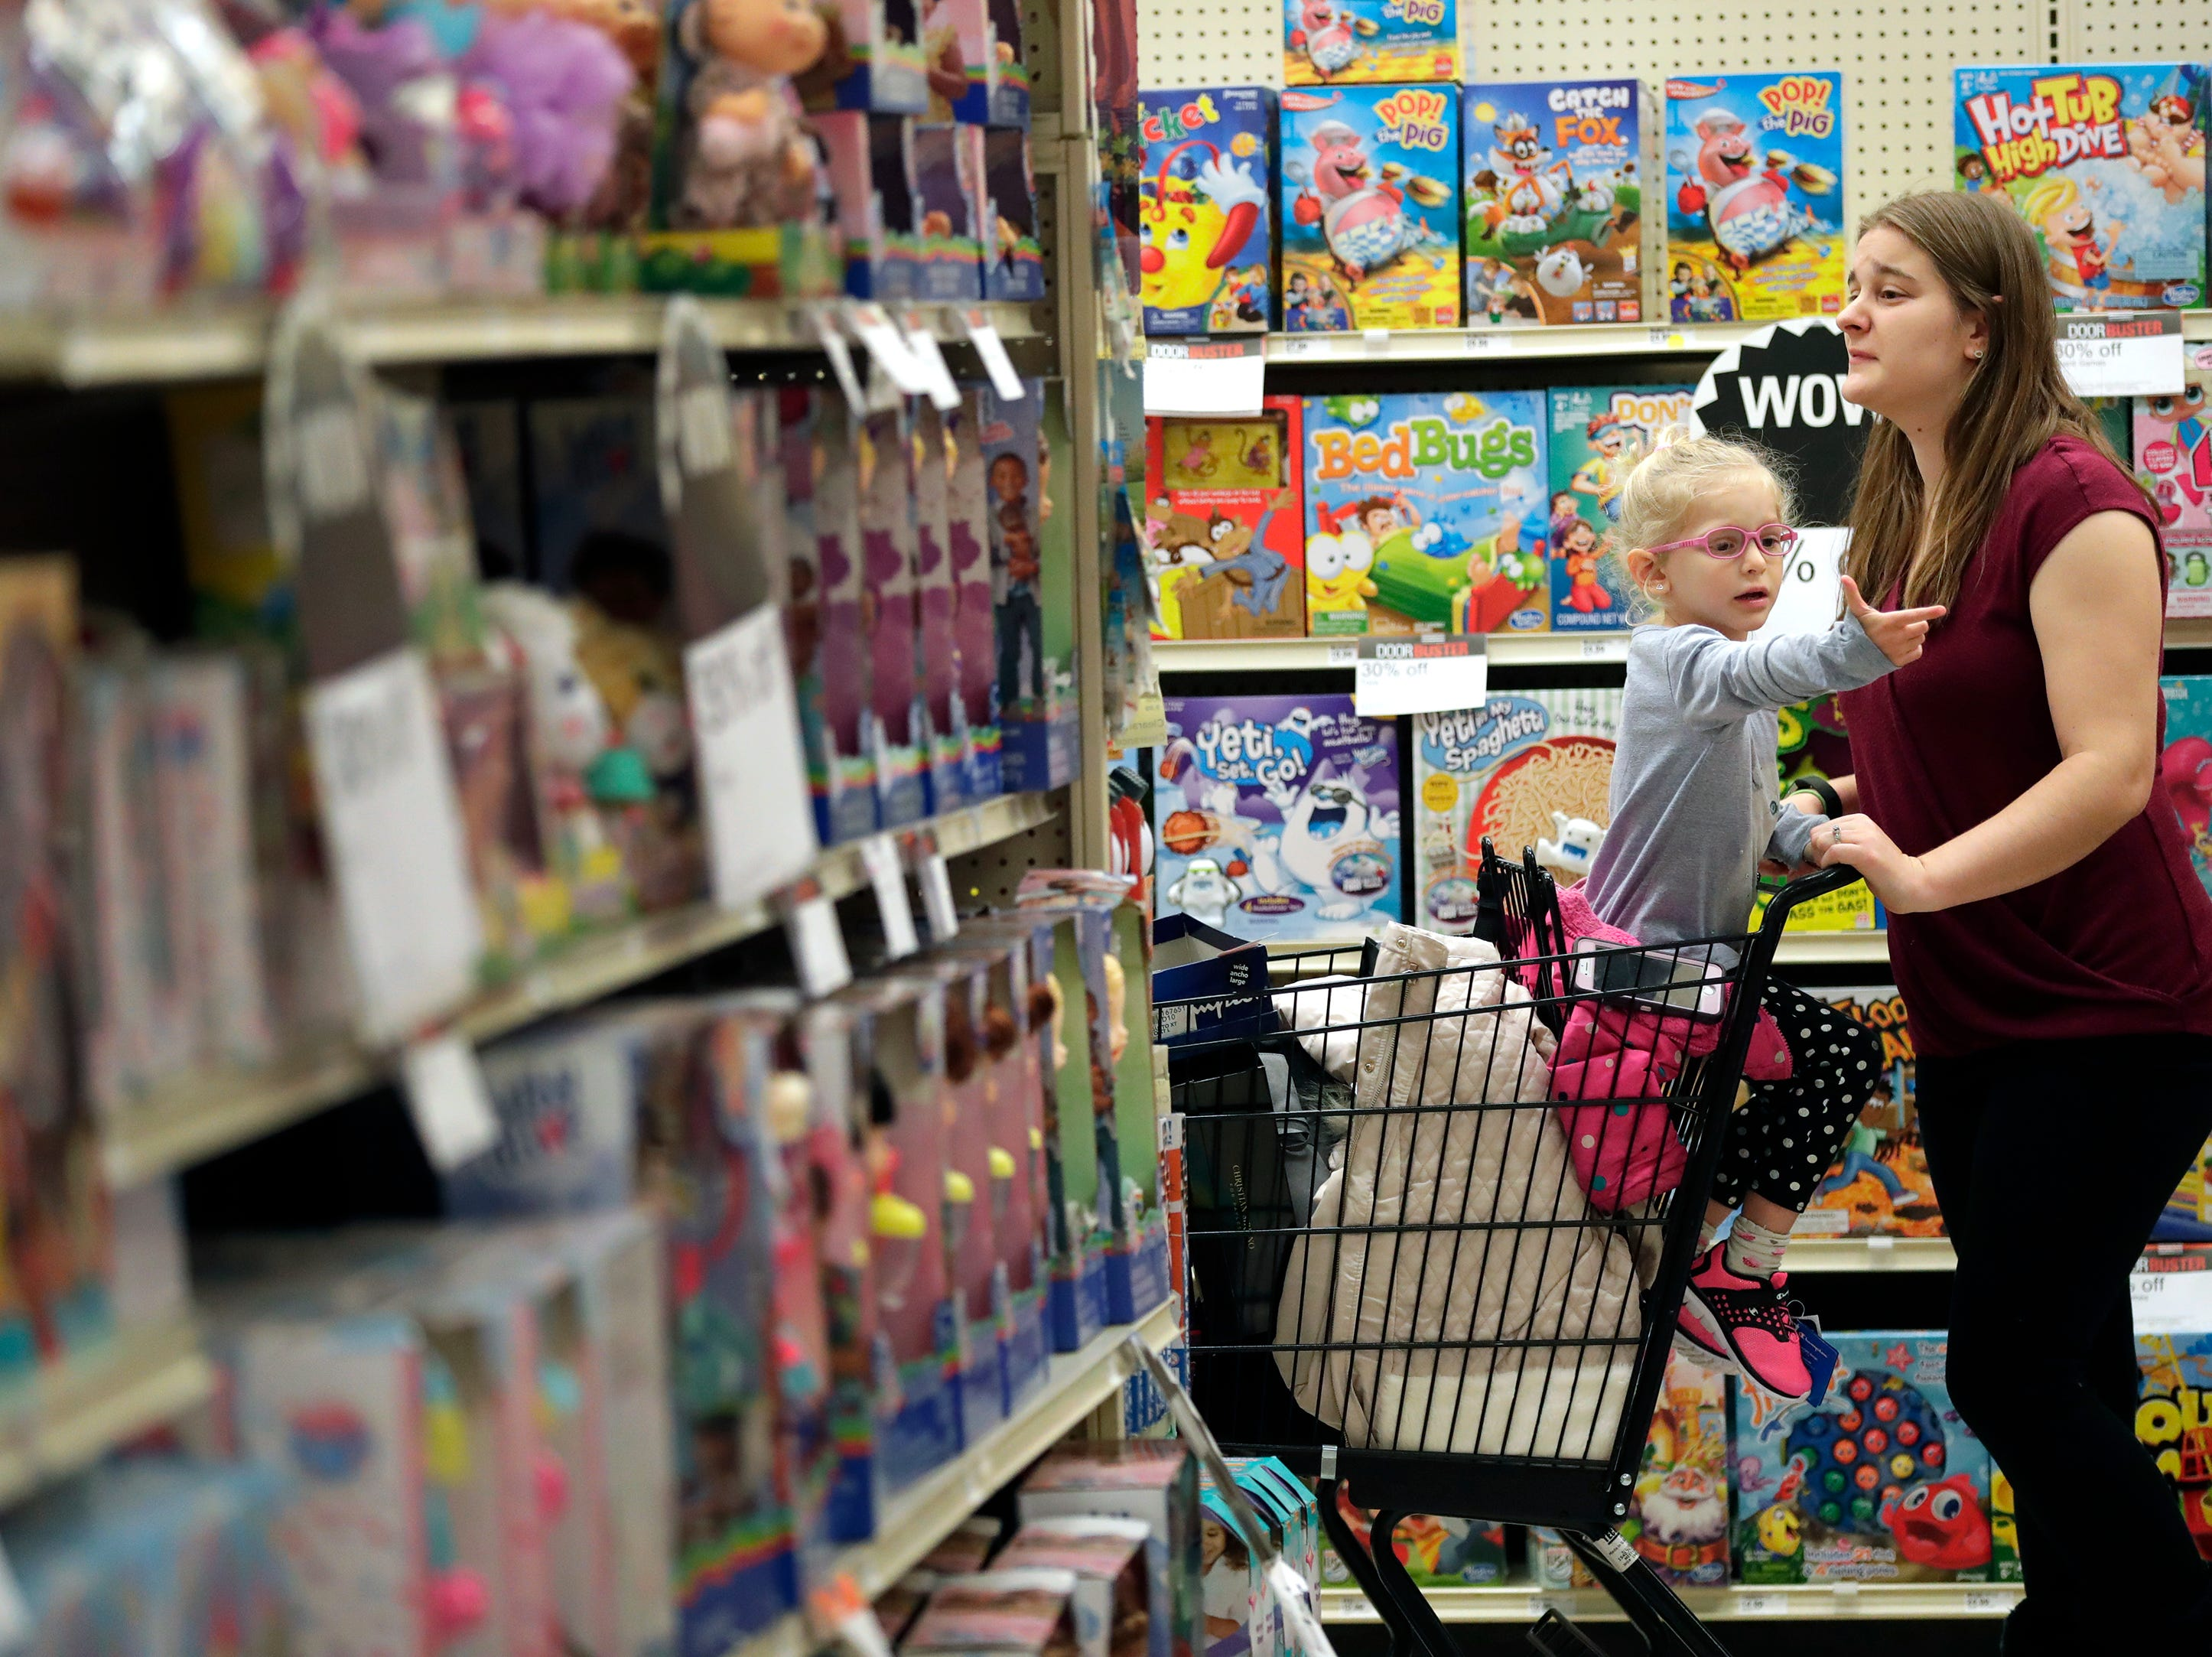 Amber Schallitz, left, and her daughter Zoey, 3, shop in the toy section while looking for Black Friday deals at Shopko Thursday, November 22, 2018, in Appleton, Wis. The two are from Grafton.